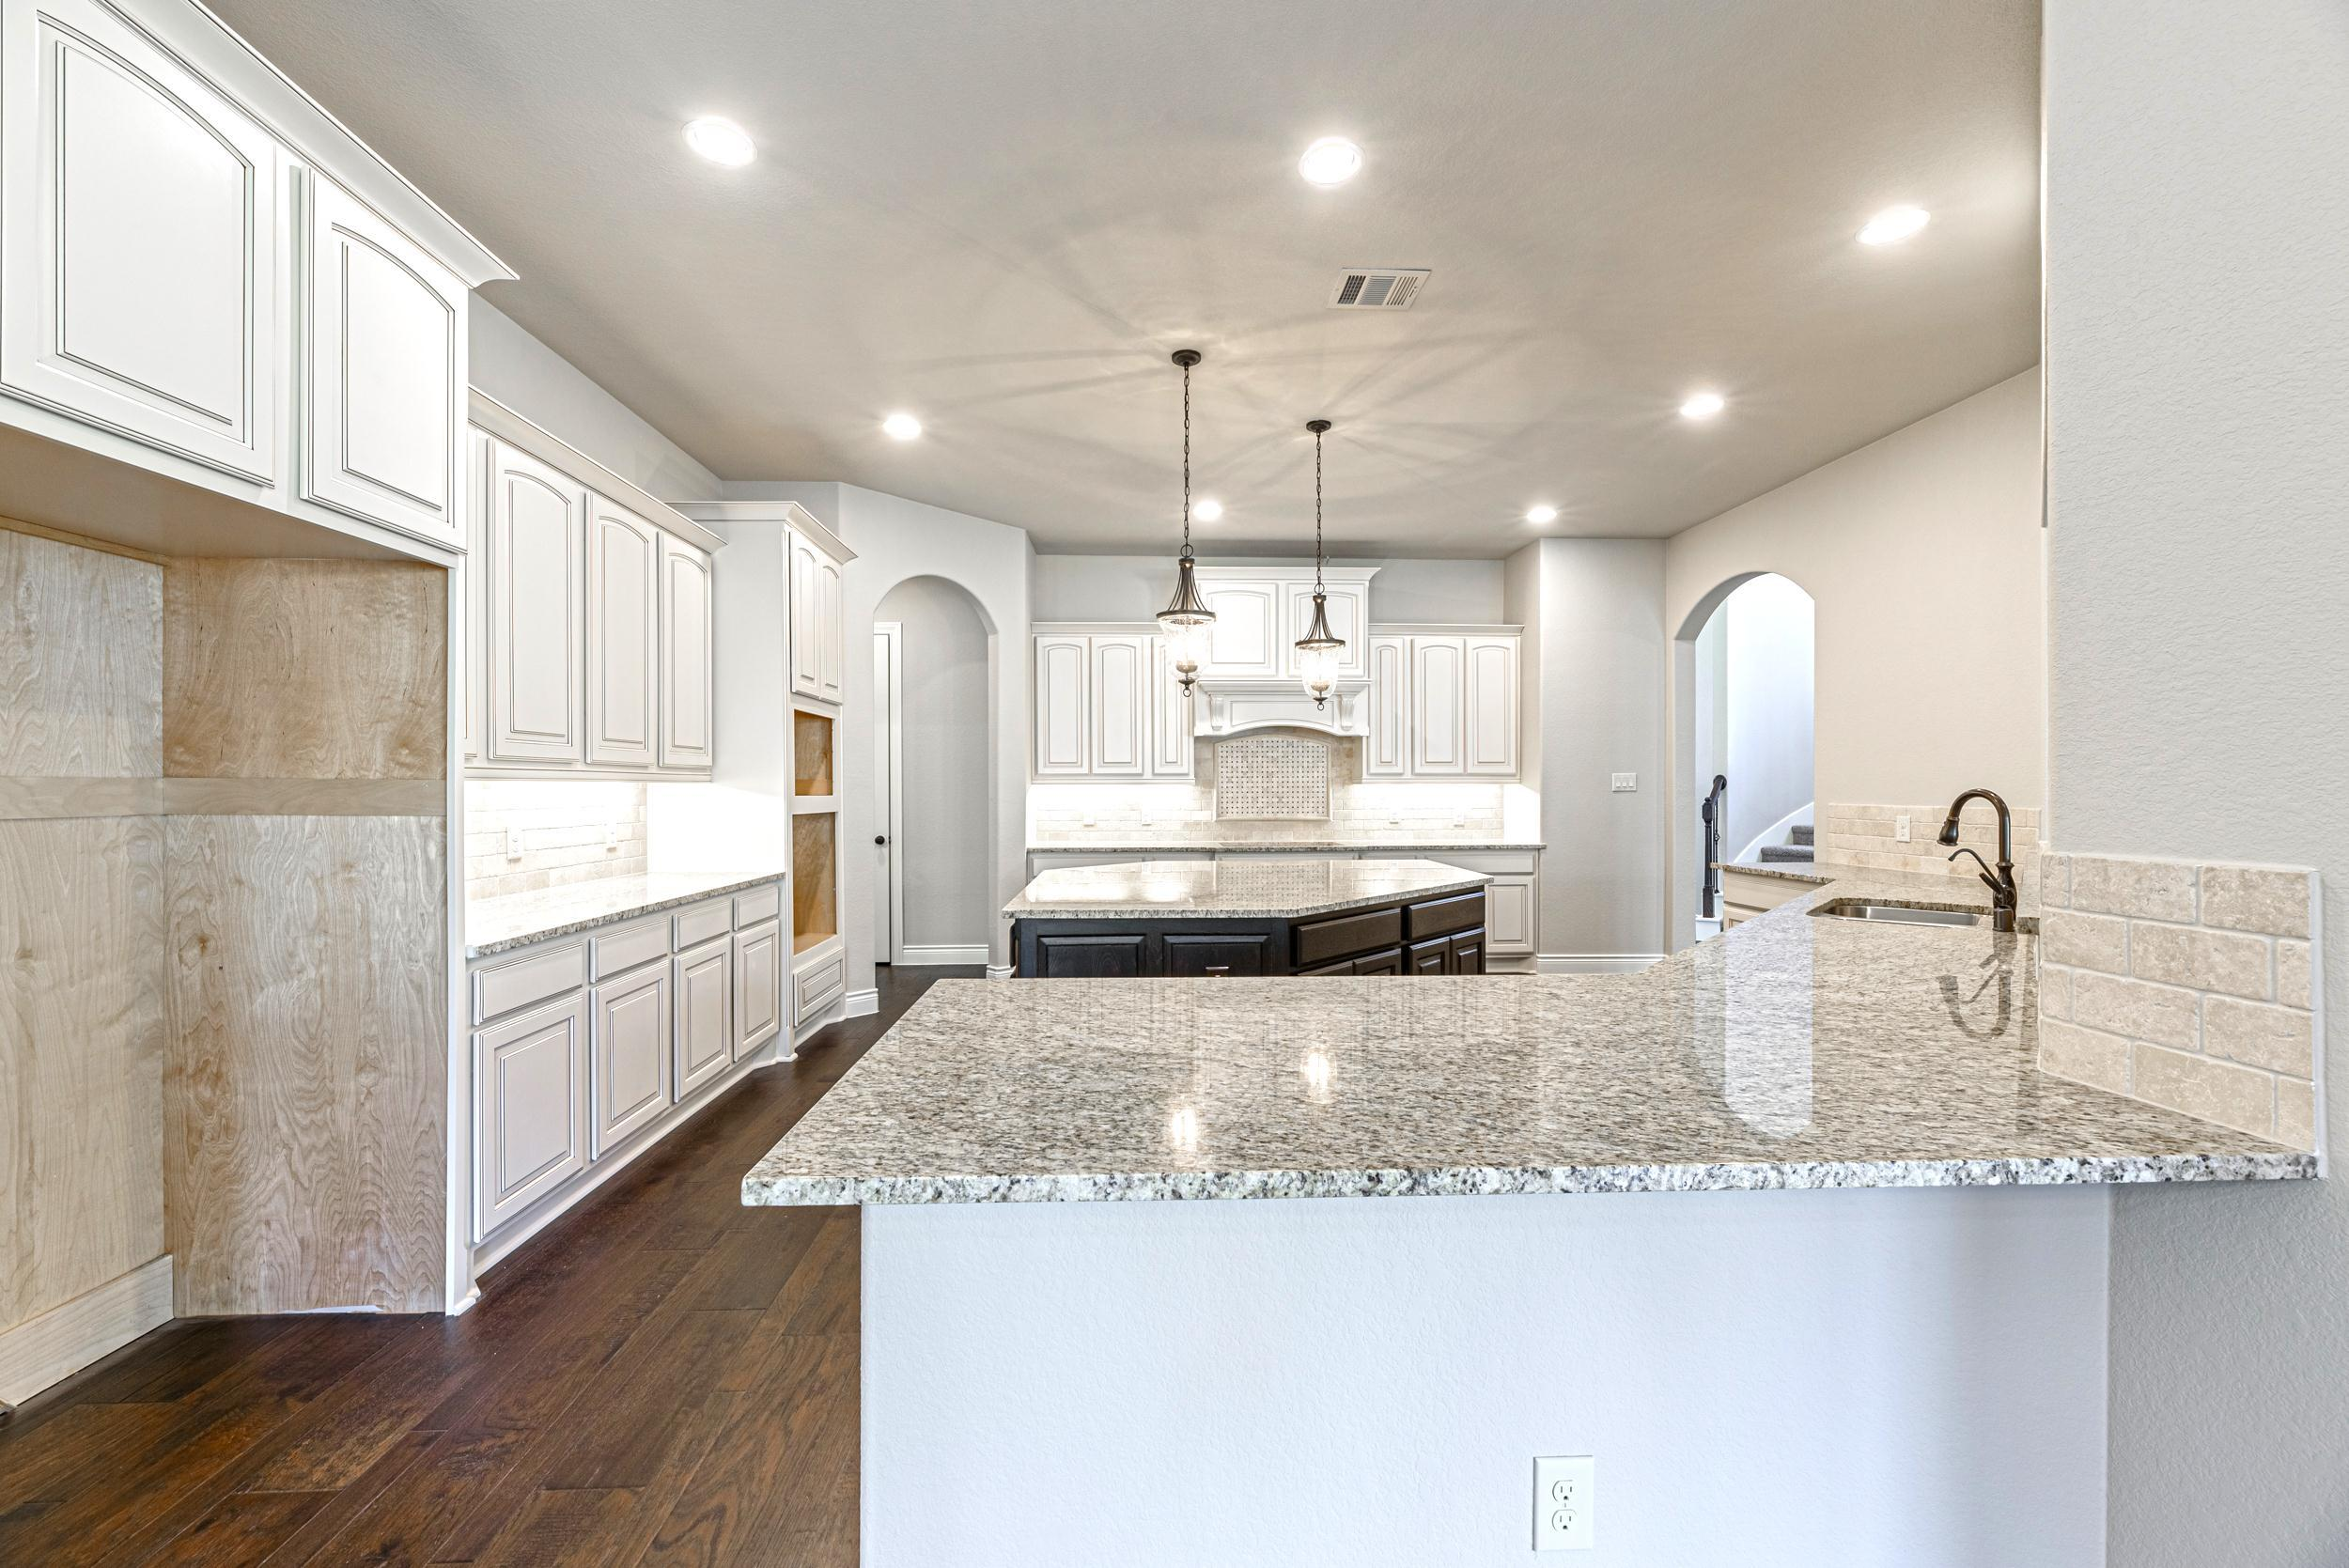 Kitchen featured in the Towne Lake 4195 By Ravenna Homes in Houston, TX